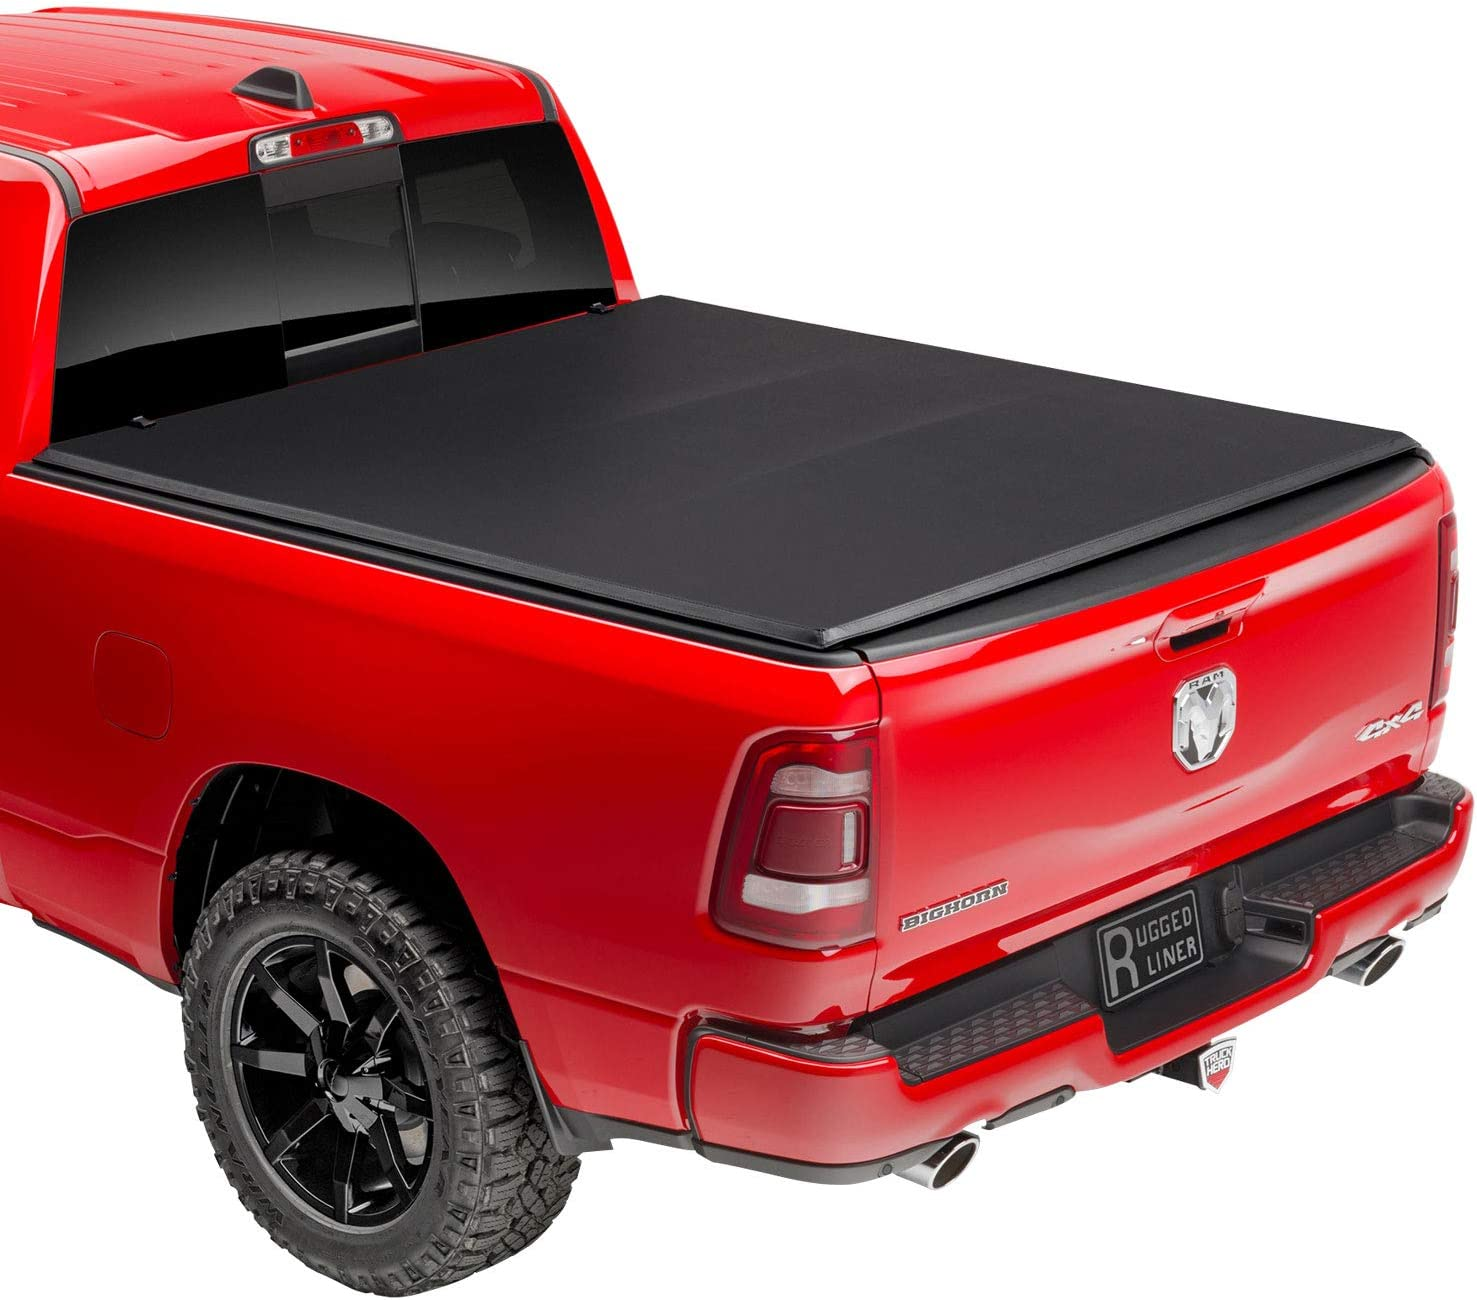 Rugged Liner E Series Soft Folding Truck Bed Tonneau Cover E3 Tun5507 Fits 2007 2013 Toyota Tundra With Or W O Utility Track 5 7 Bed 66 7 Automotive Amazon Com